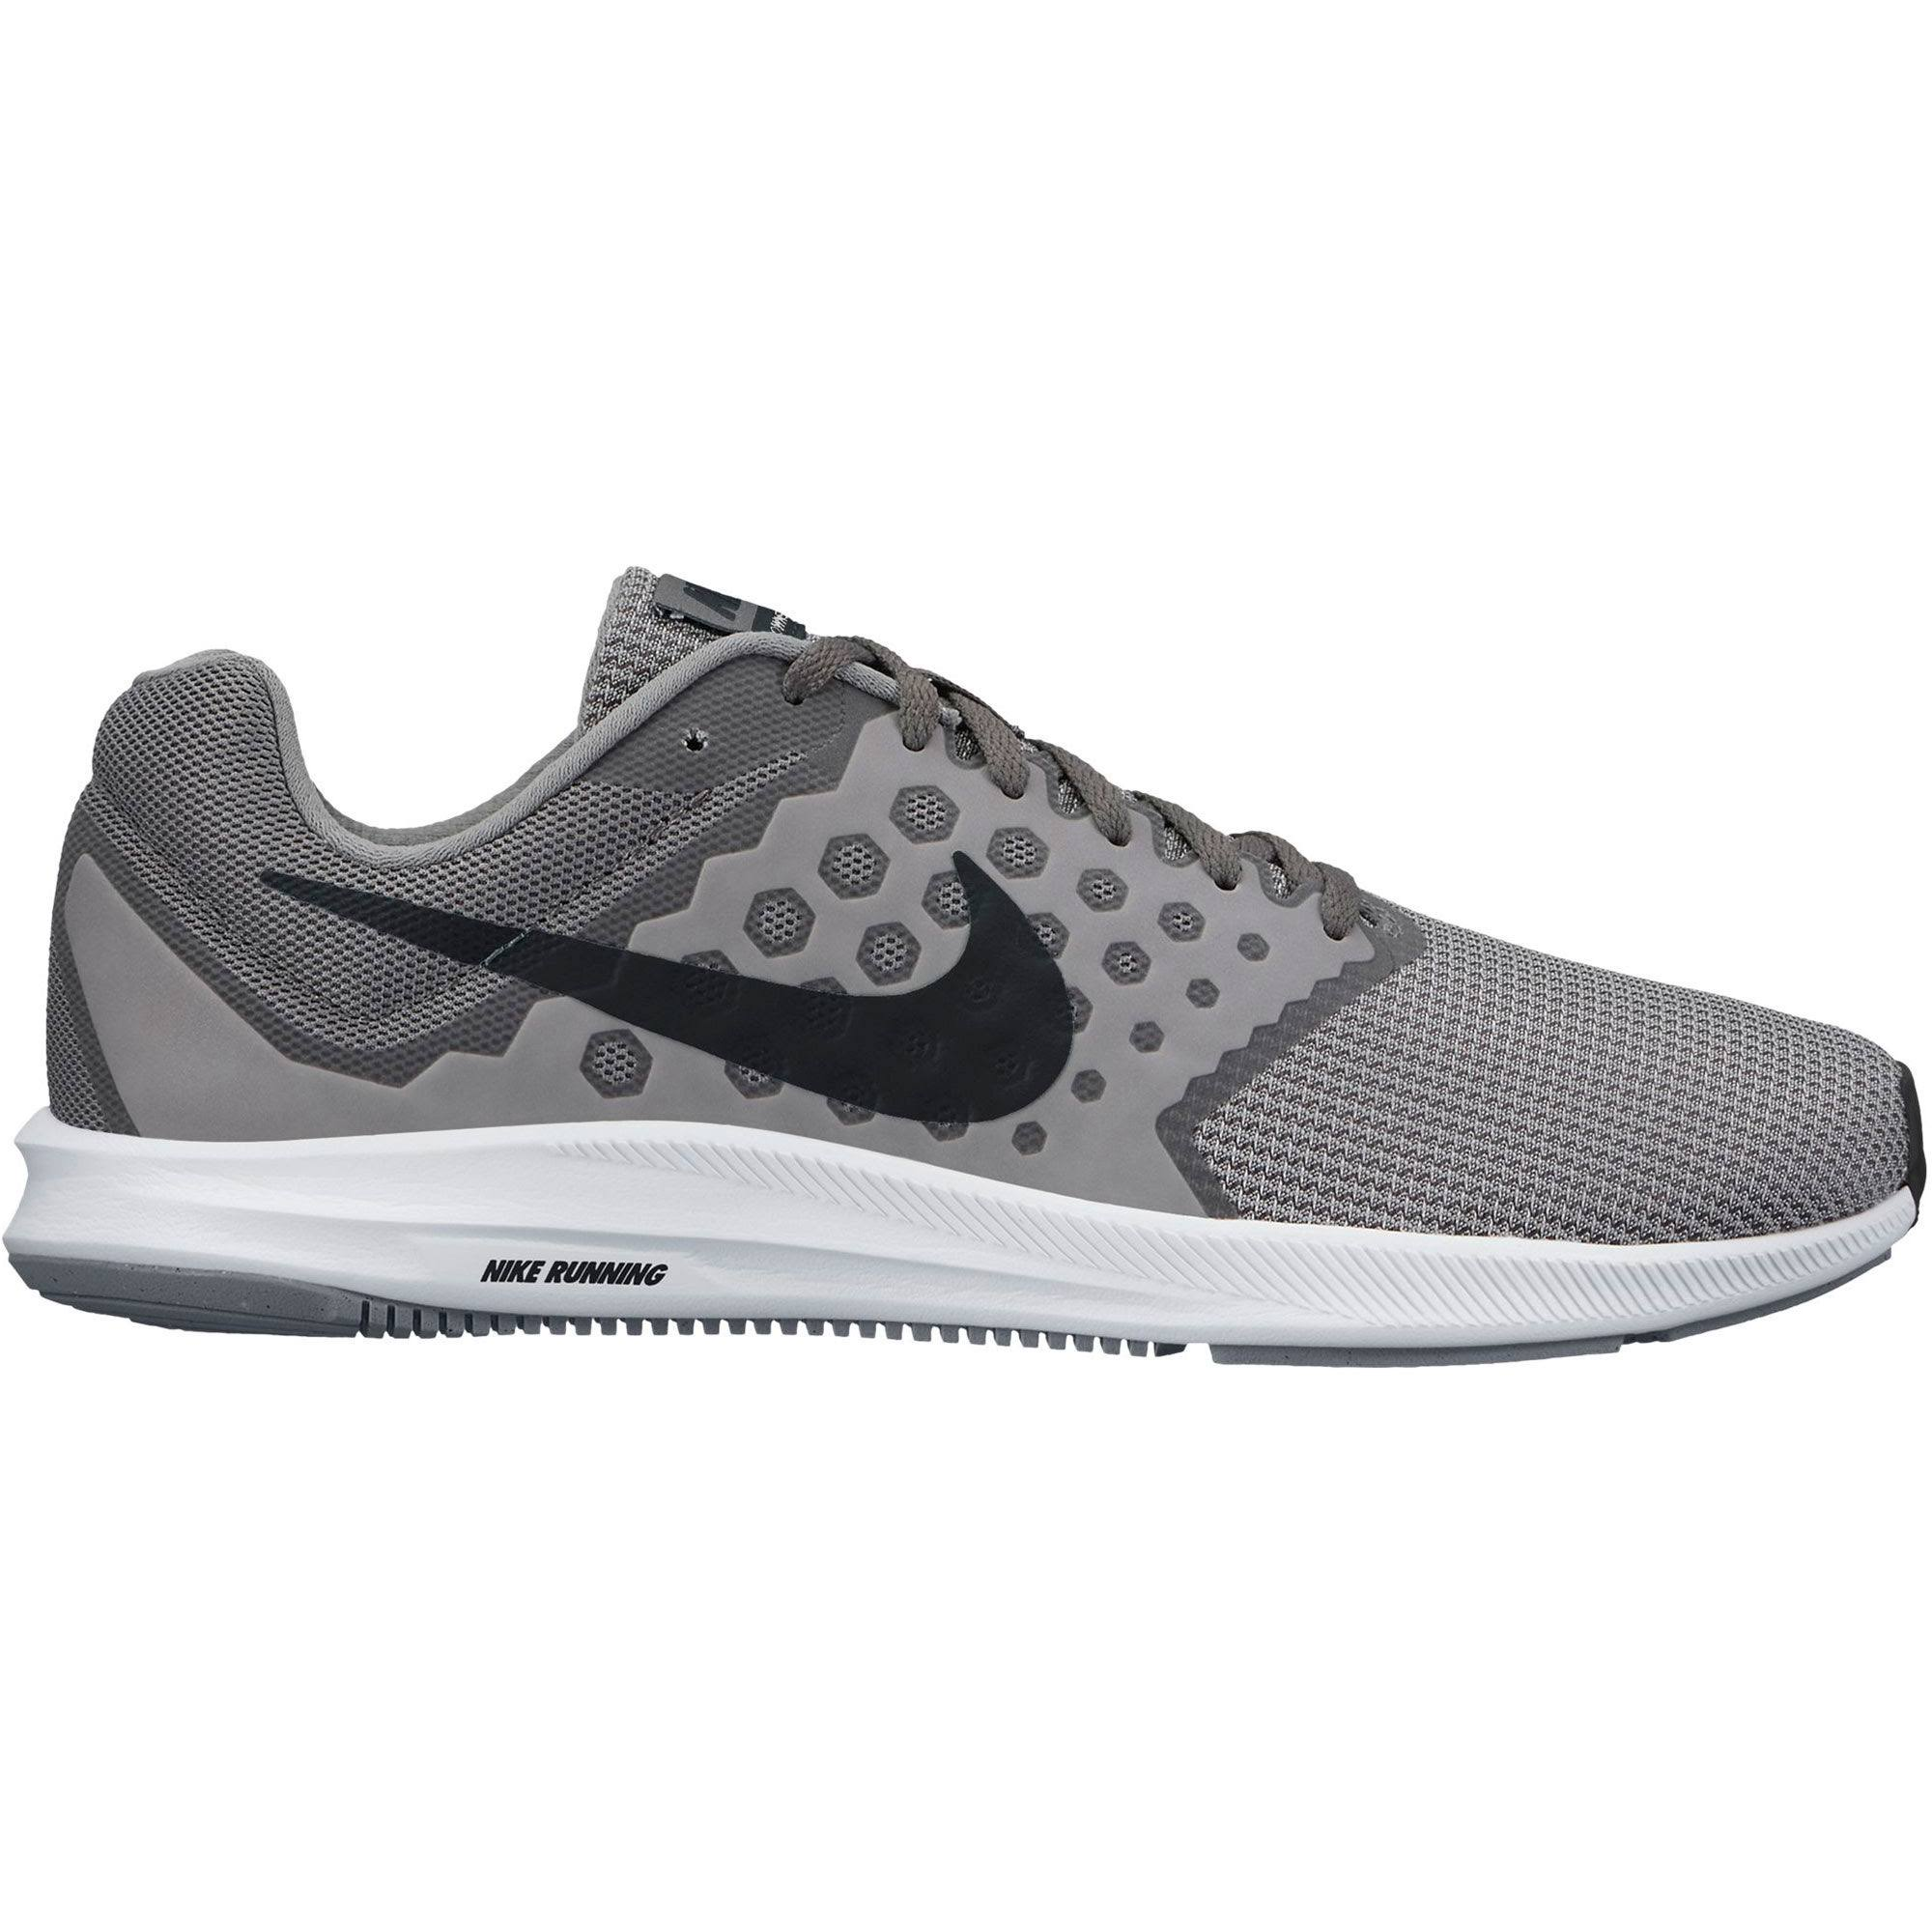 Nike Black 852459 Stealth Downshifter Grey Dark 009 7 rFqrXH